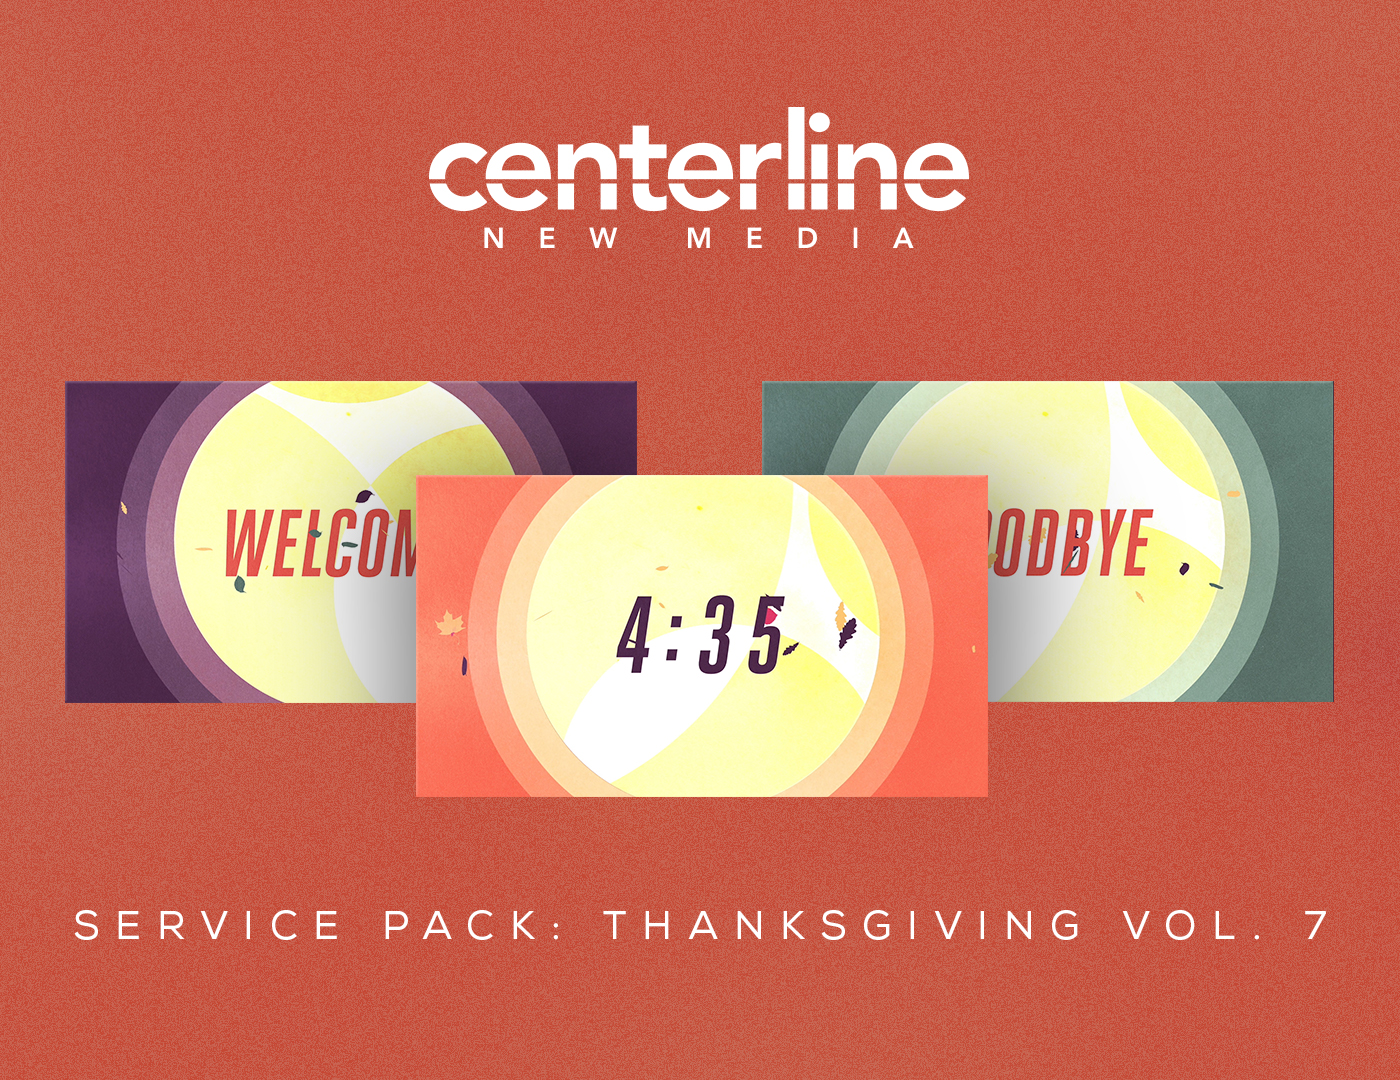 SERVICE PACK: THANKSGIVING VOL. 7